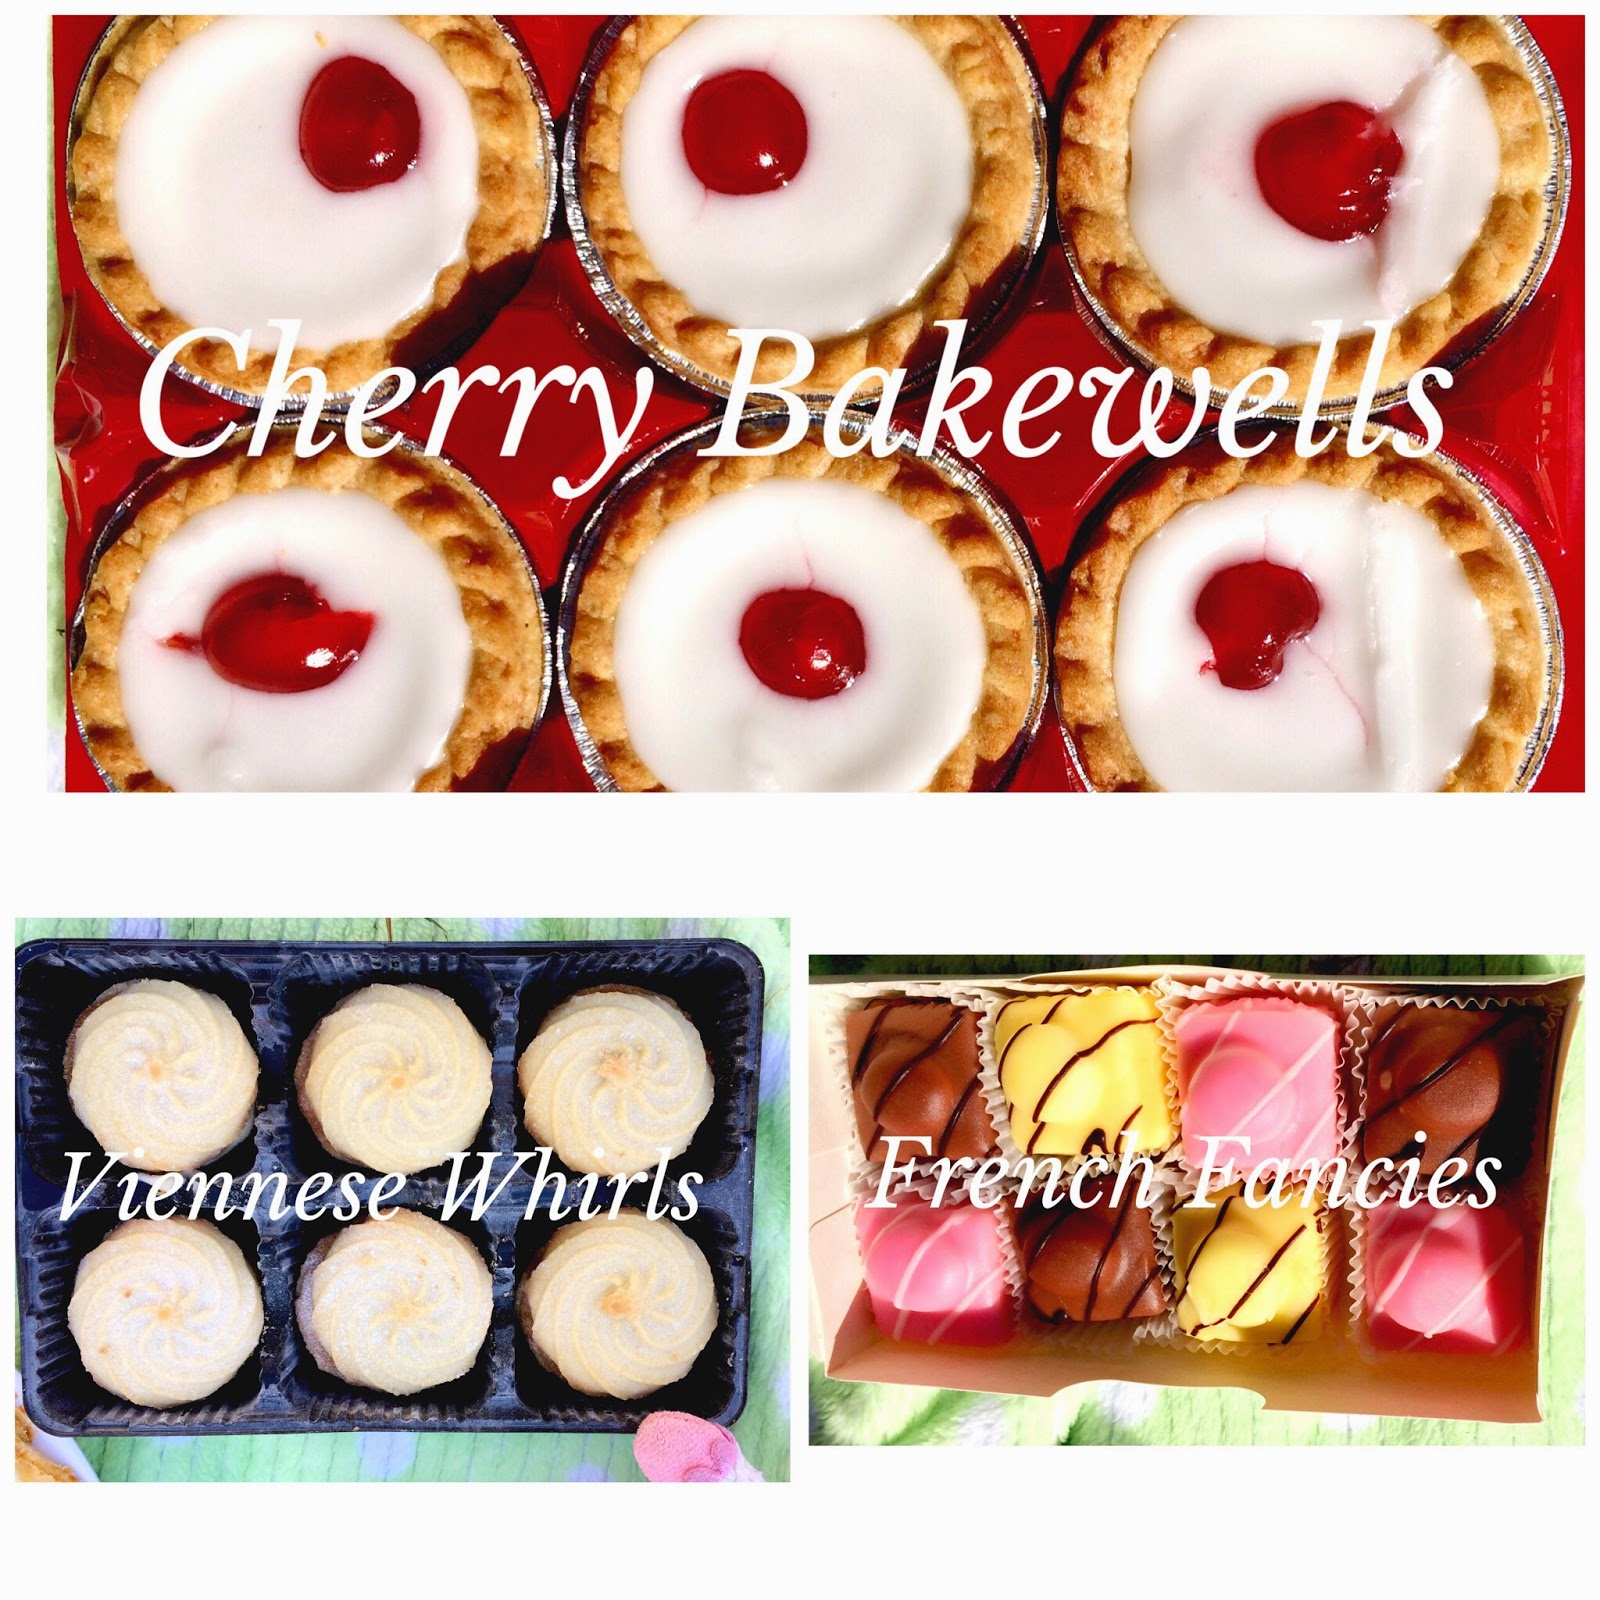 cherry bakewells, french fancies